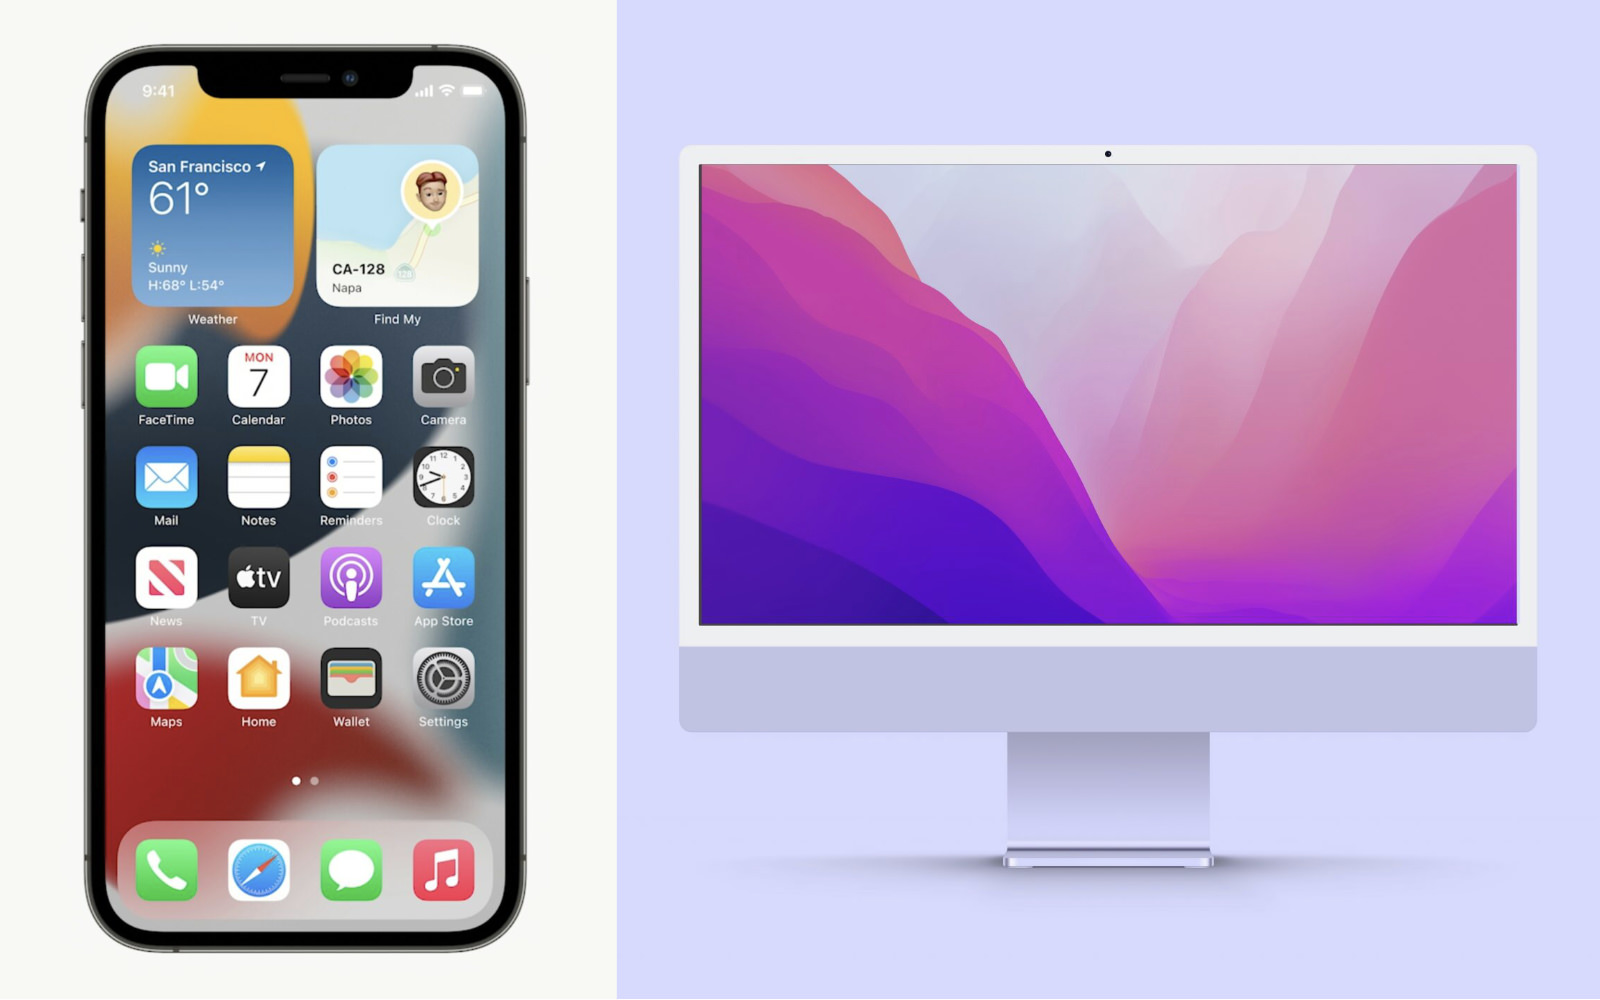 Wallpapers for iOS15andMonterey